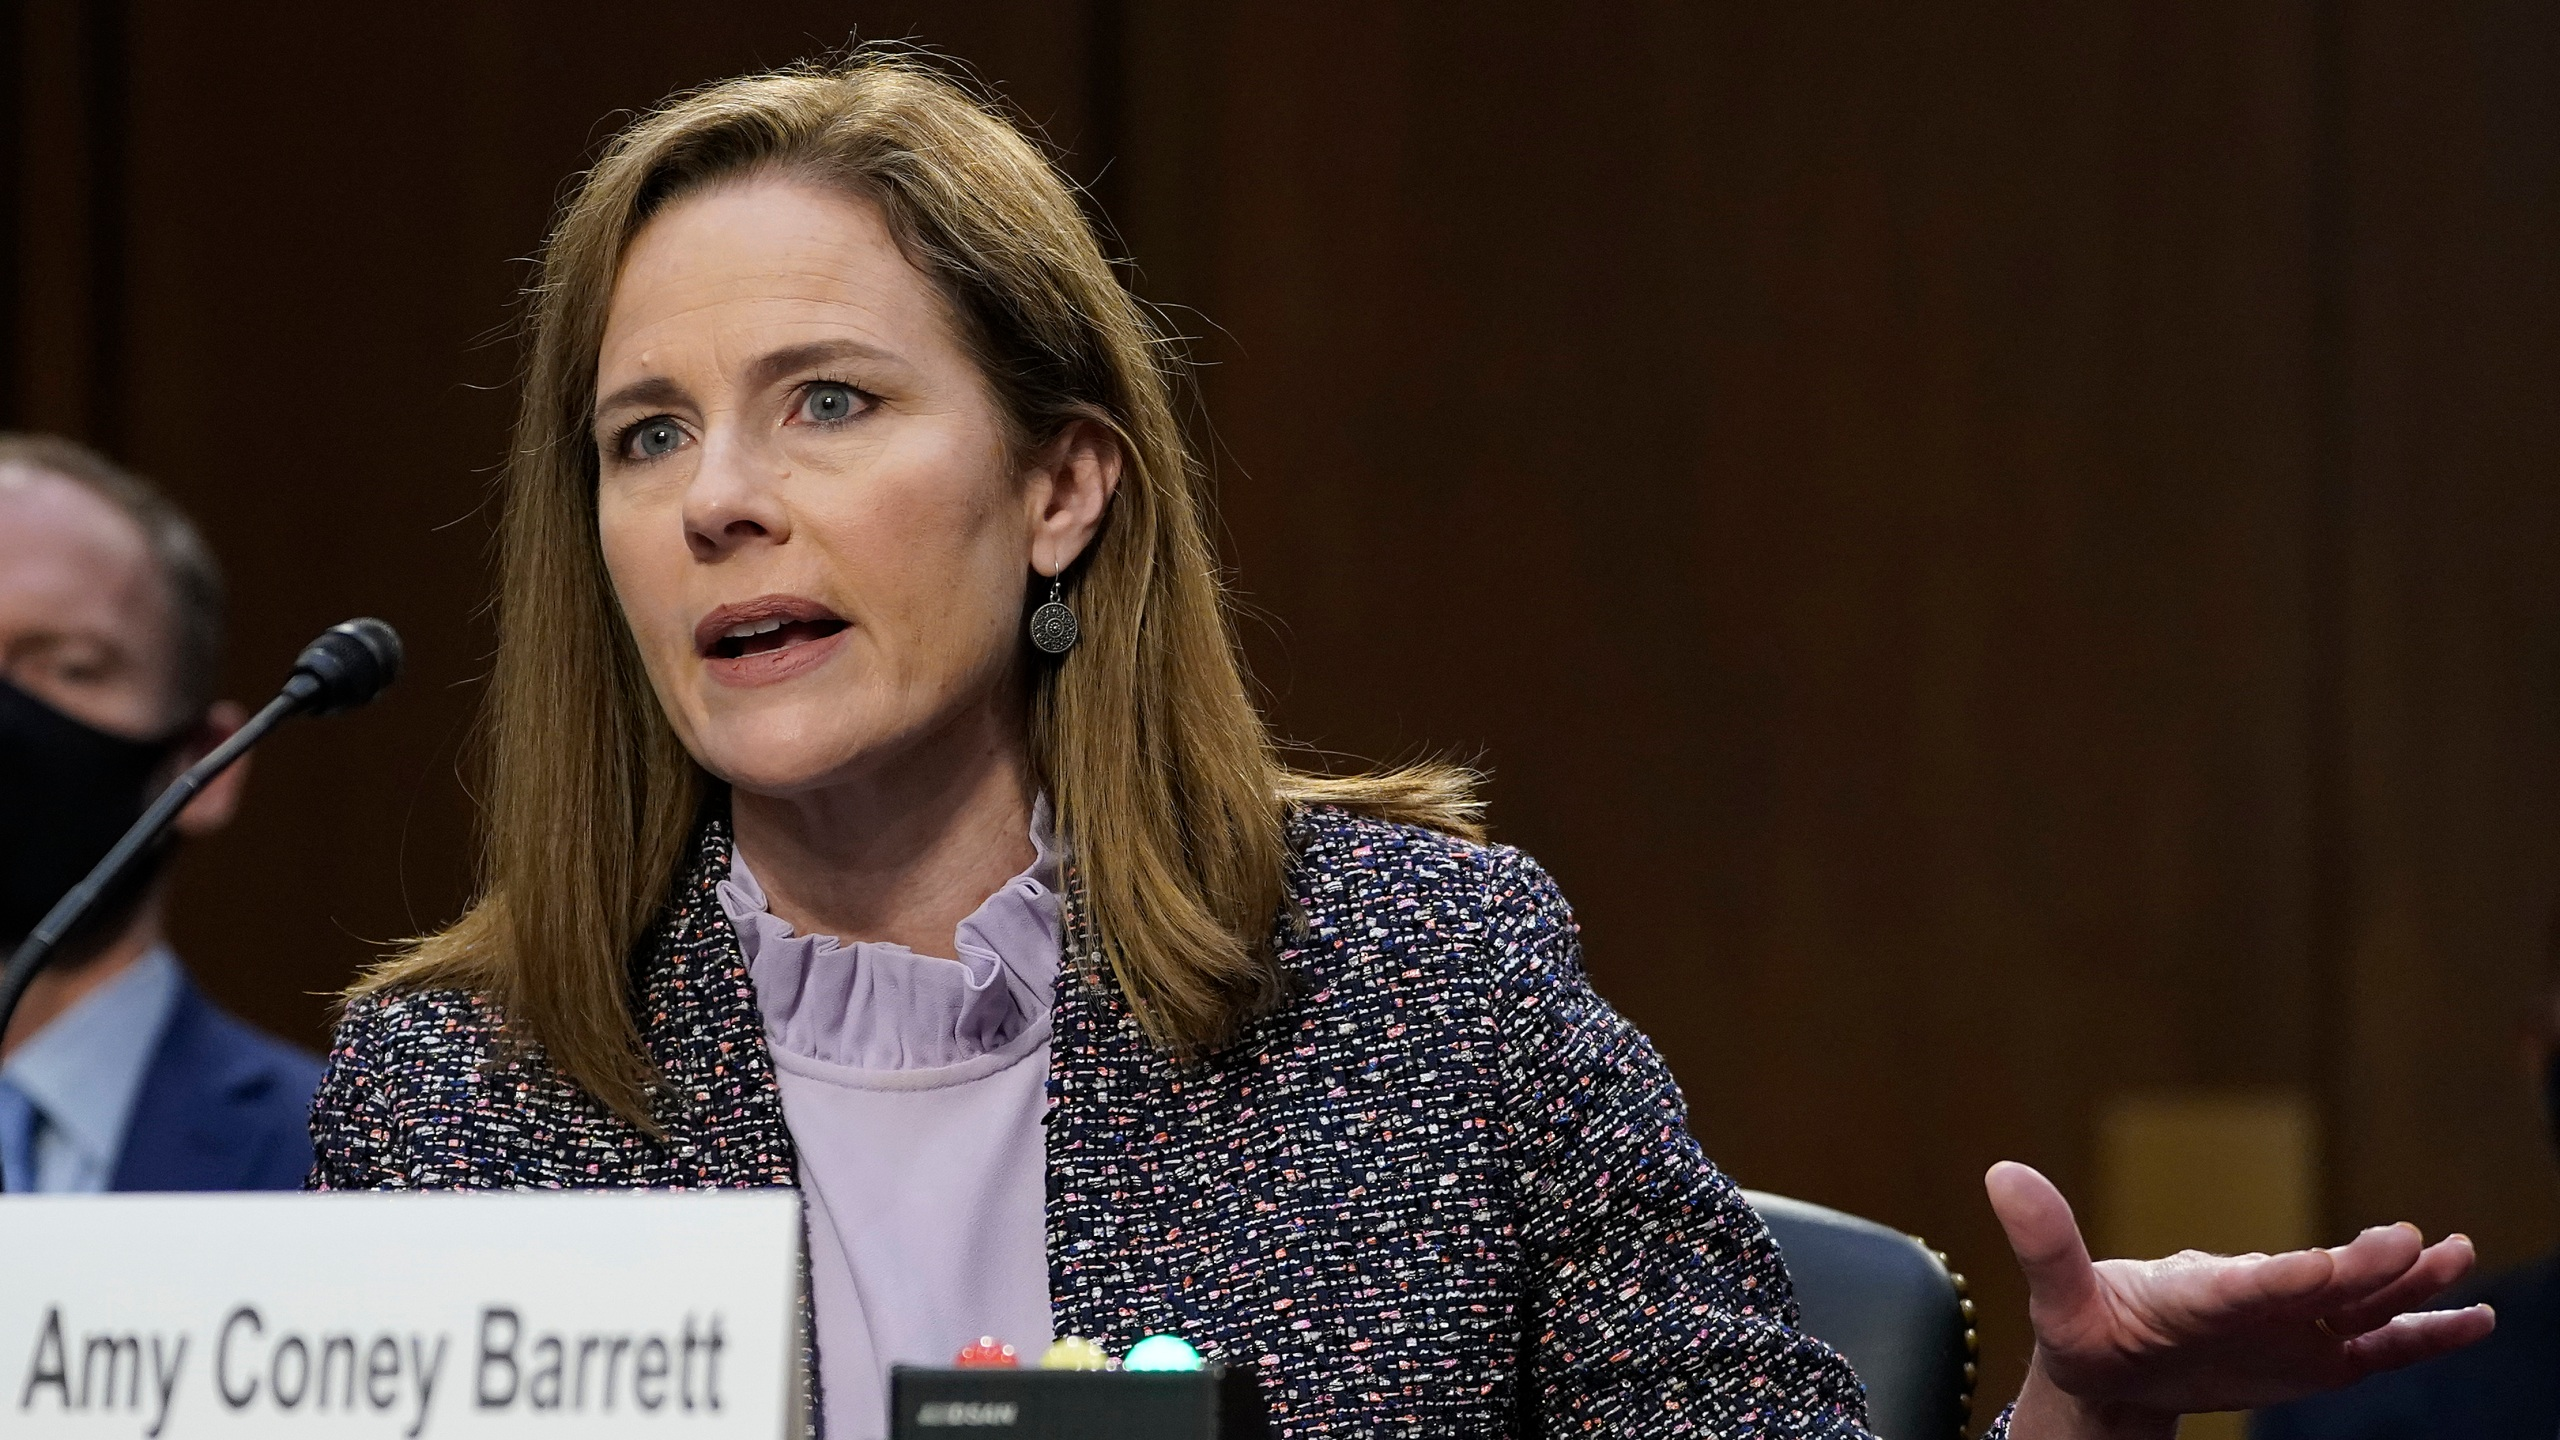 Supreme Court nominee Amy Coney Barrett testifies before the Senate Judiciary Committee during the third day of her confirmation hearings on Capitol Hill in Washington, Wednesday, Oct. 14, 2020. (Drew Angerer/Pool via AP)